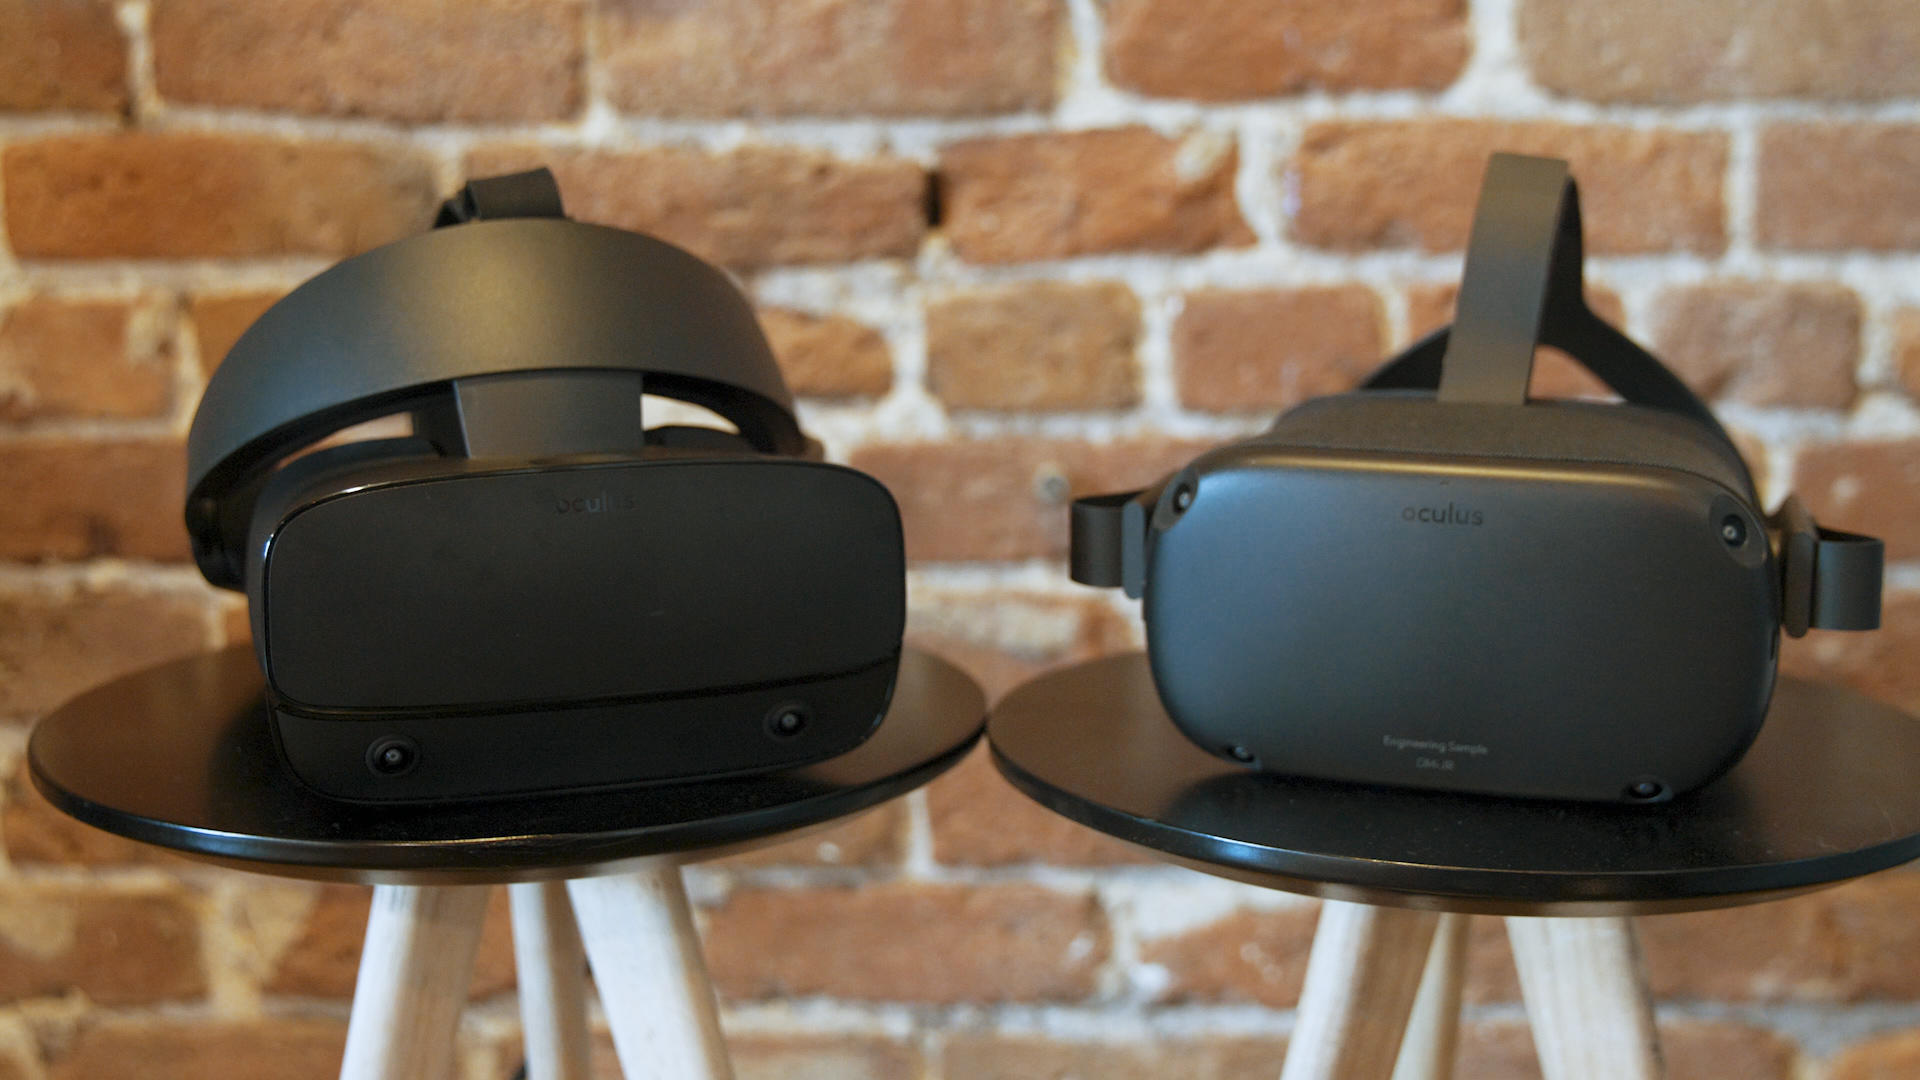 Video: First look at Oculus Quest and Oculus Rift S